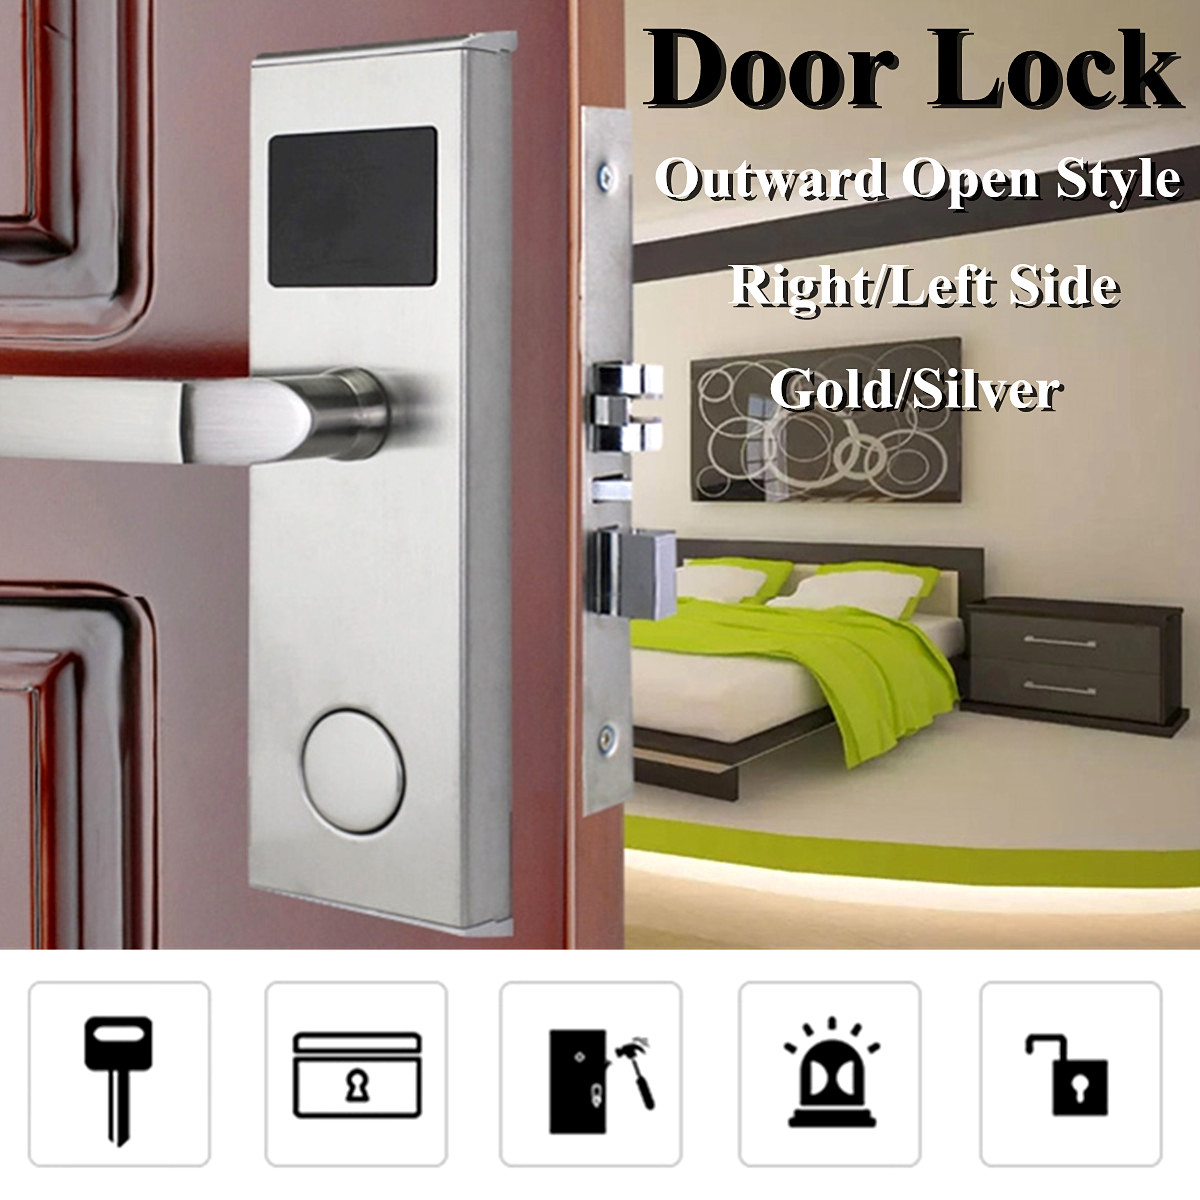 Smart Key Card Digital Lockset Security Entry Door Code Lock with 5 RFID Card Tags Knob Handle Stainless Steel Left/Right-Free Handed